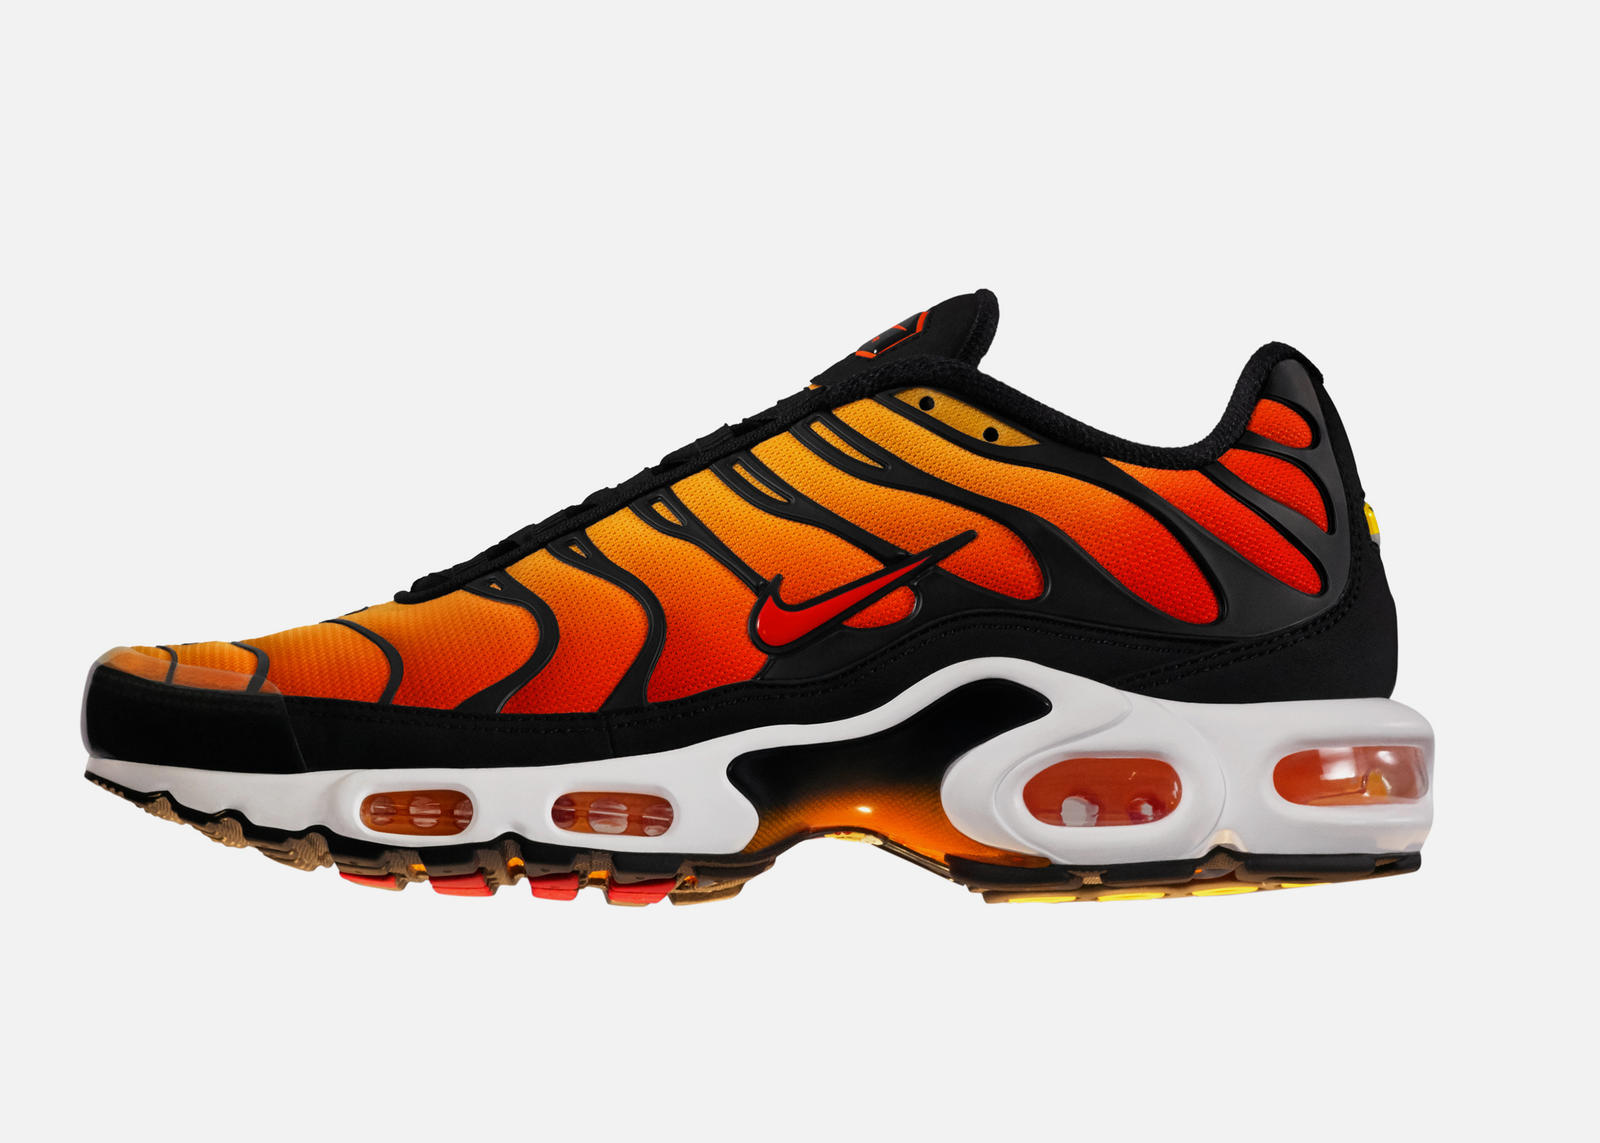 best value e2eed 09b61 Nike Air Max Plus TN History - Nike News